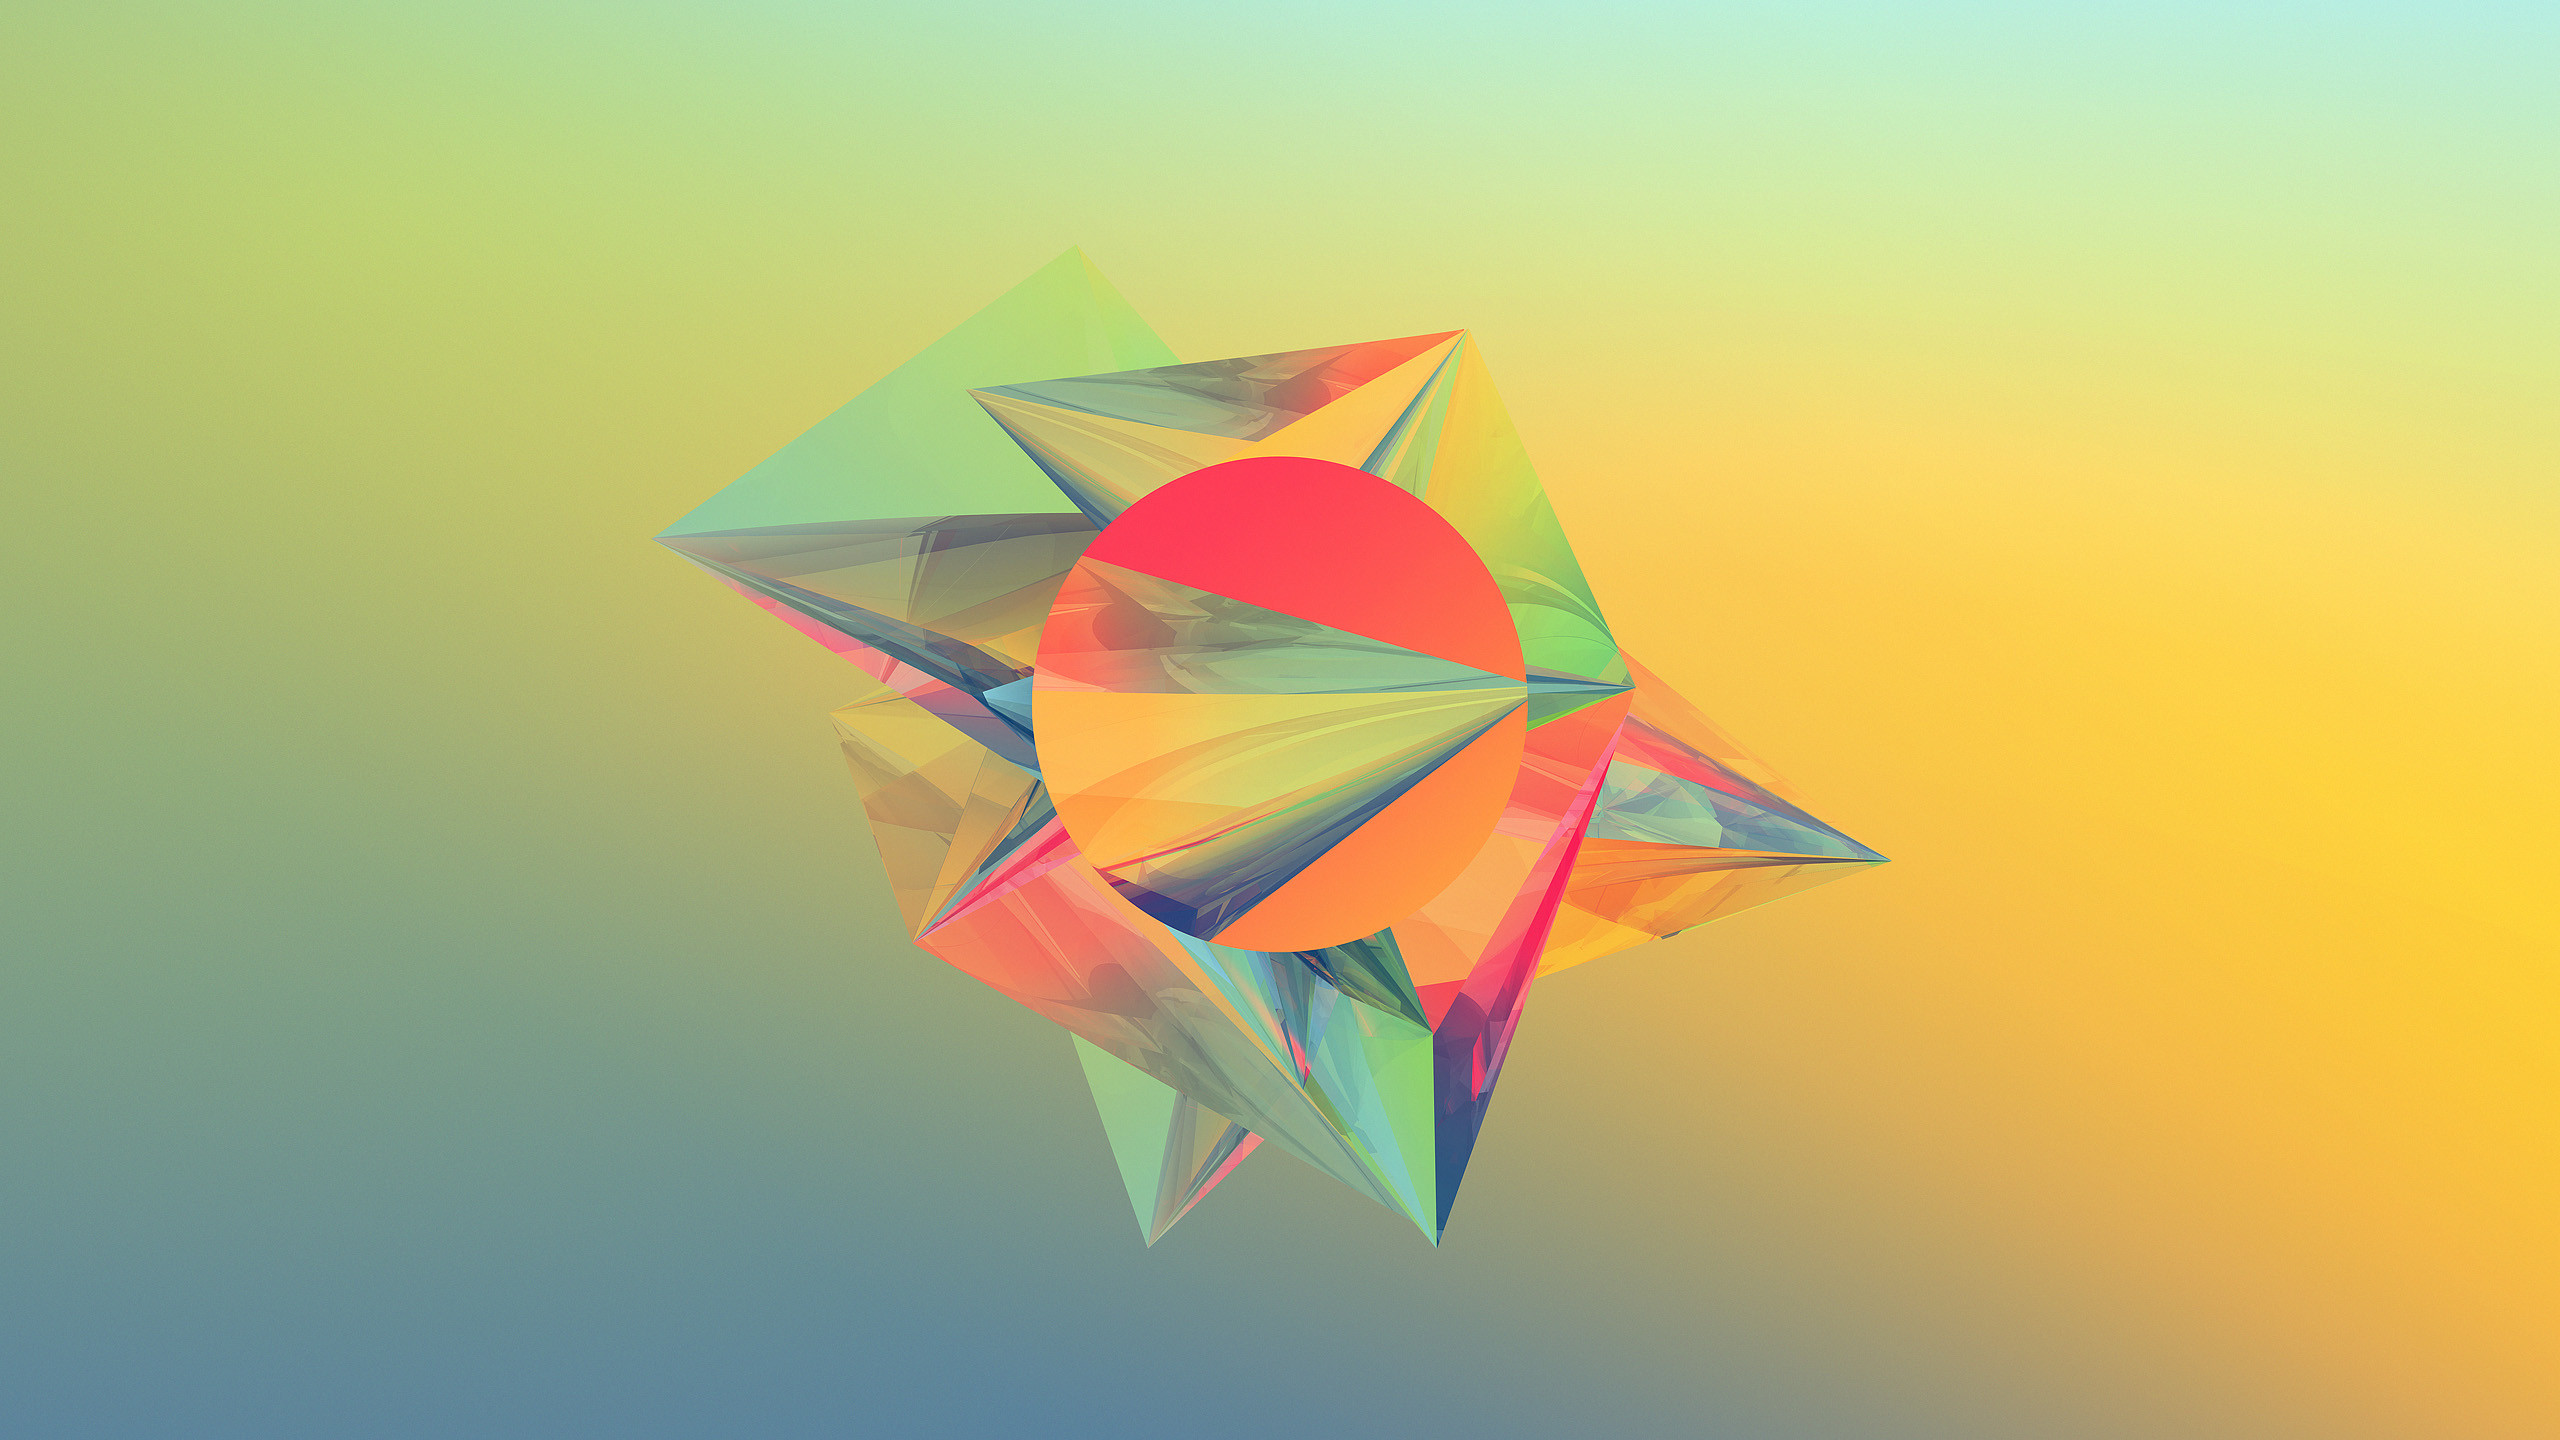 Abstract Shapes Wallpaper (63+ images)